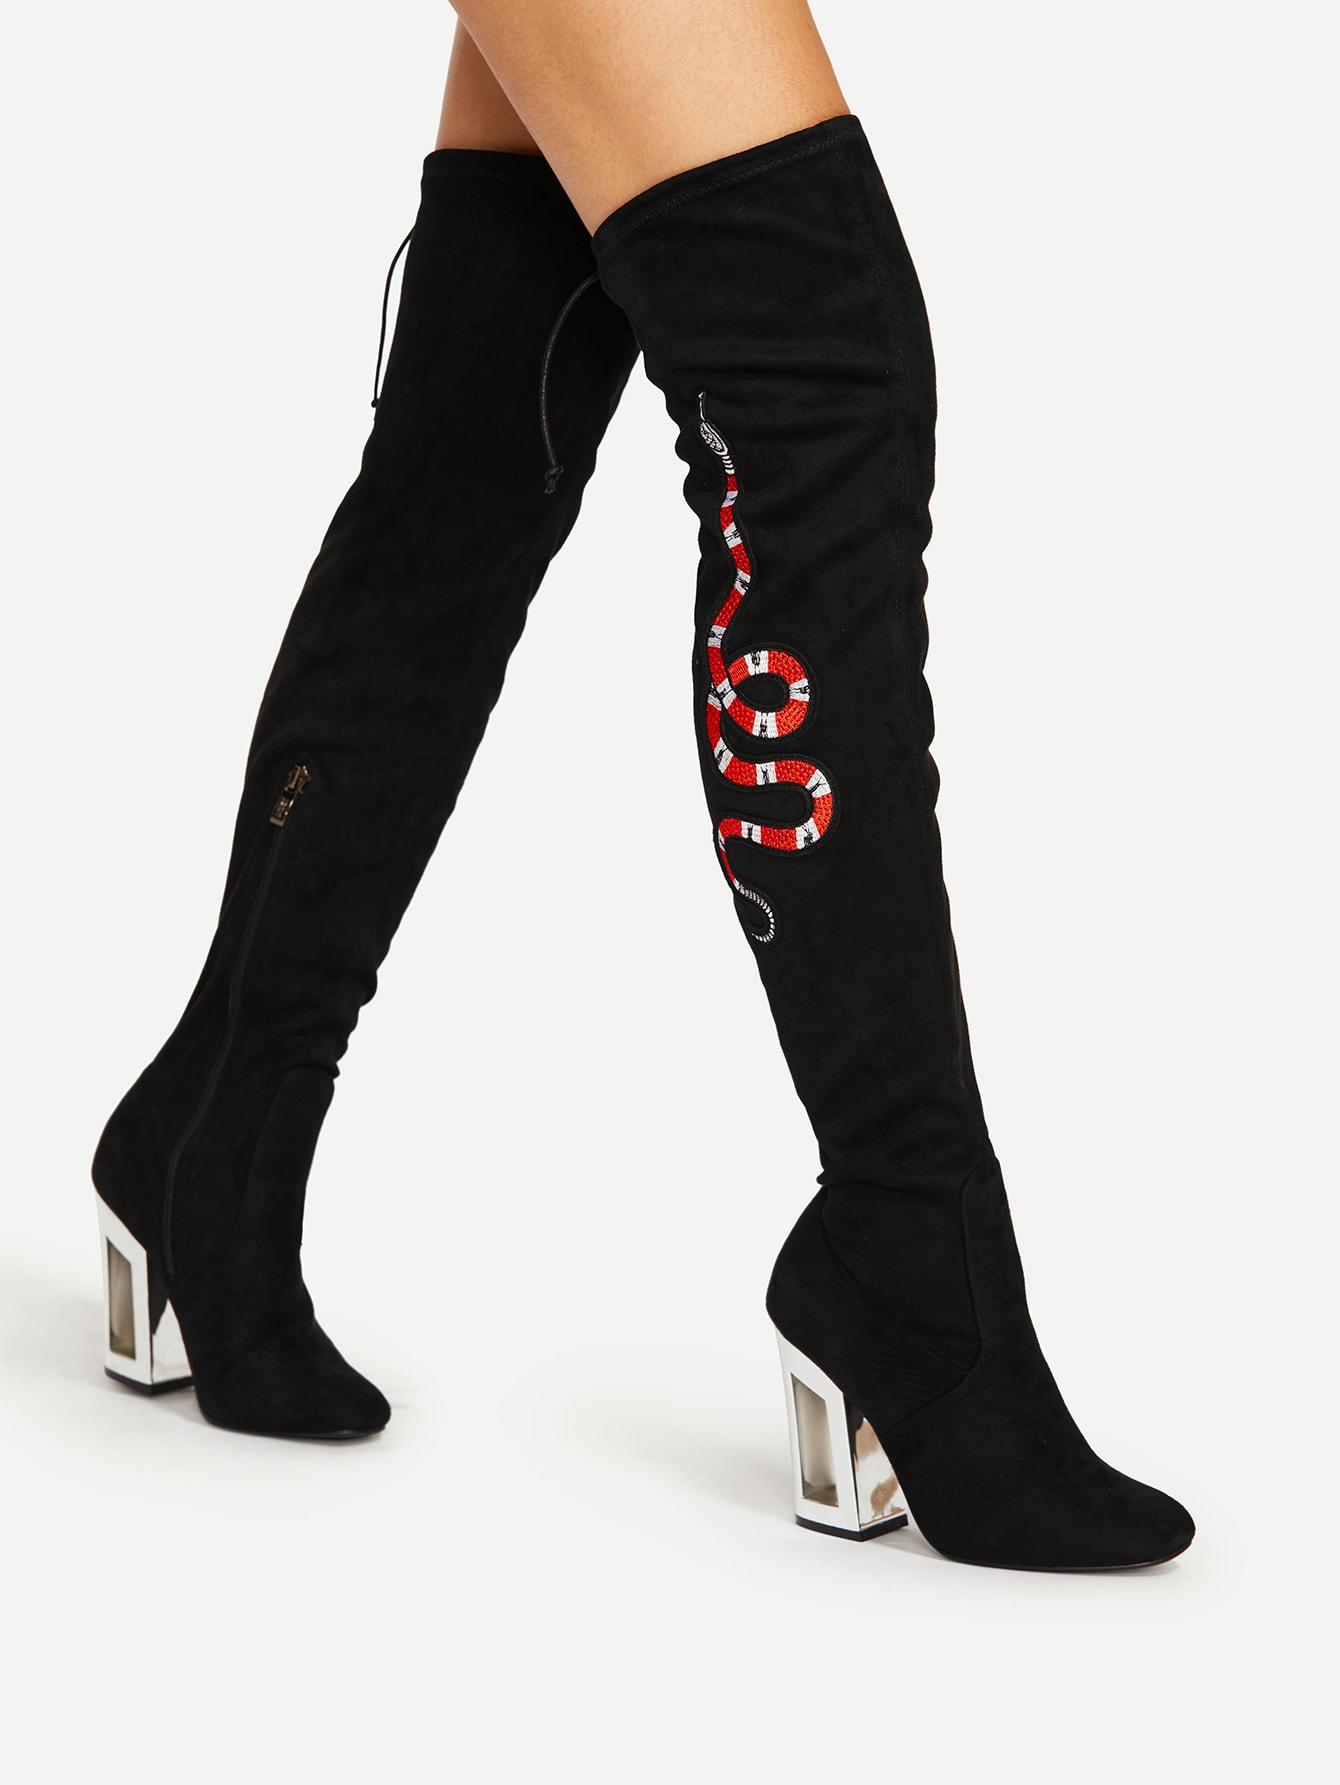 Snake Embroidery Lace Up Back Over Knee Boots shoes17080517